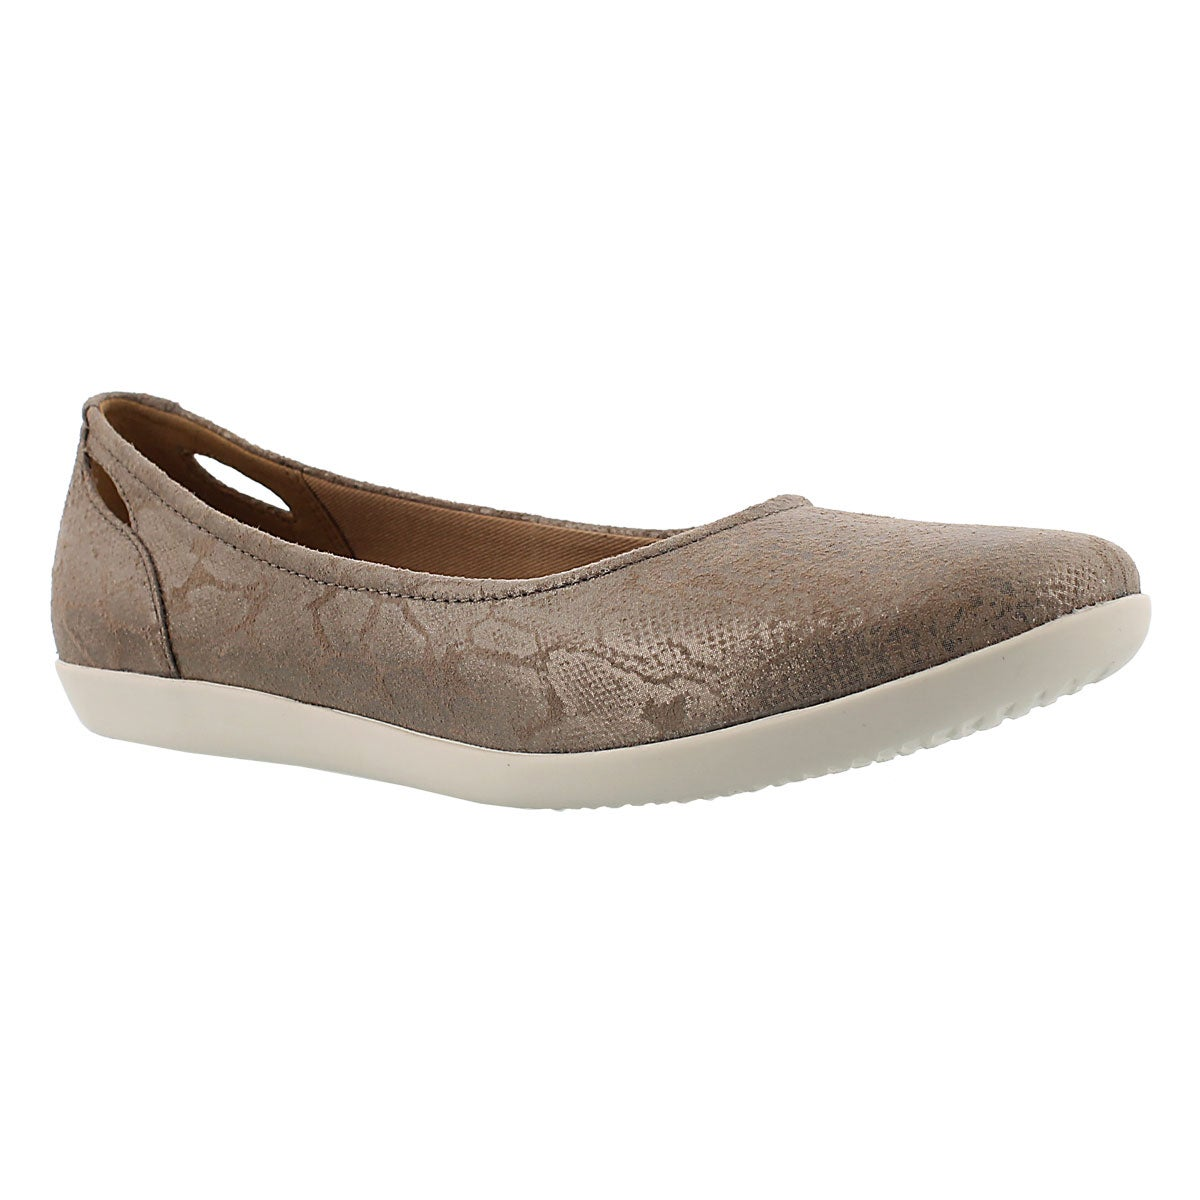 Women's HELINA ALESSIA pebble dress flats